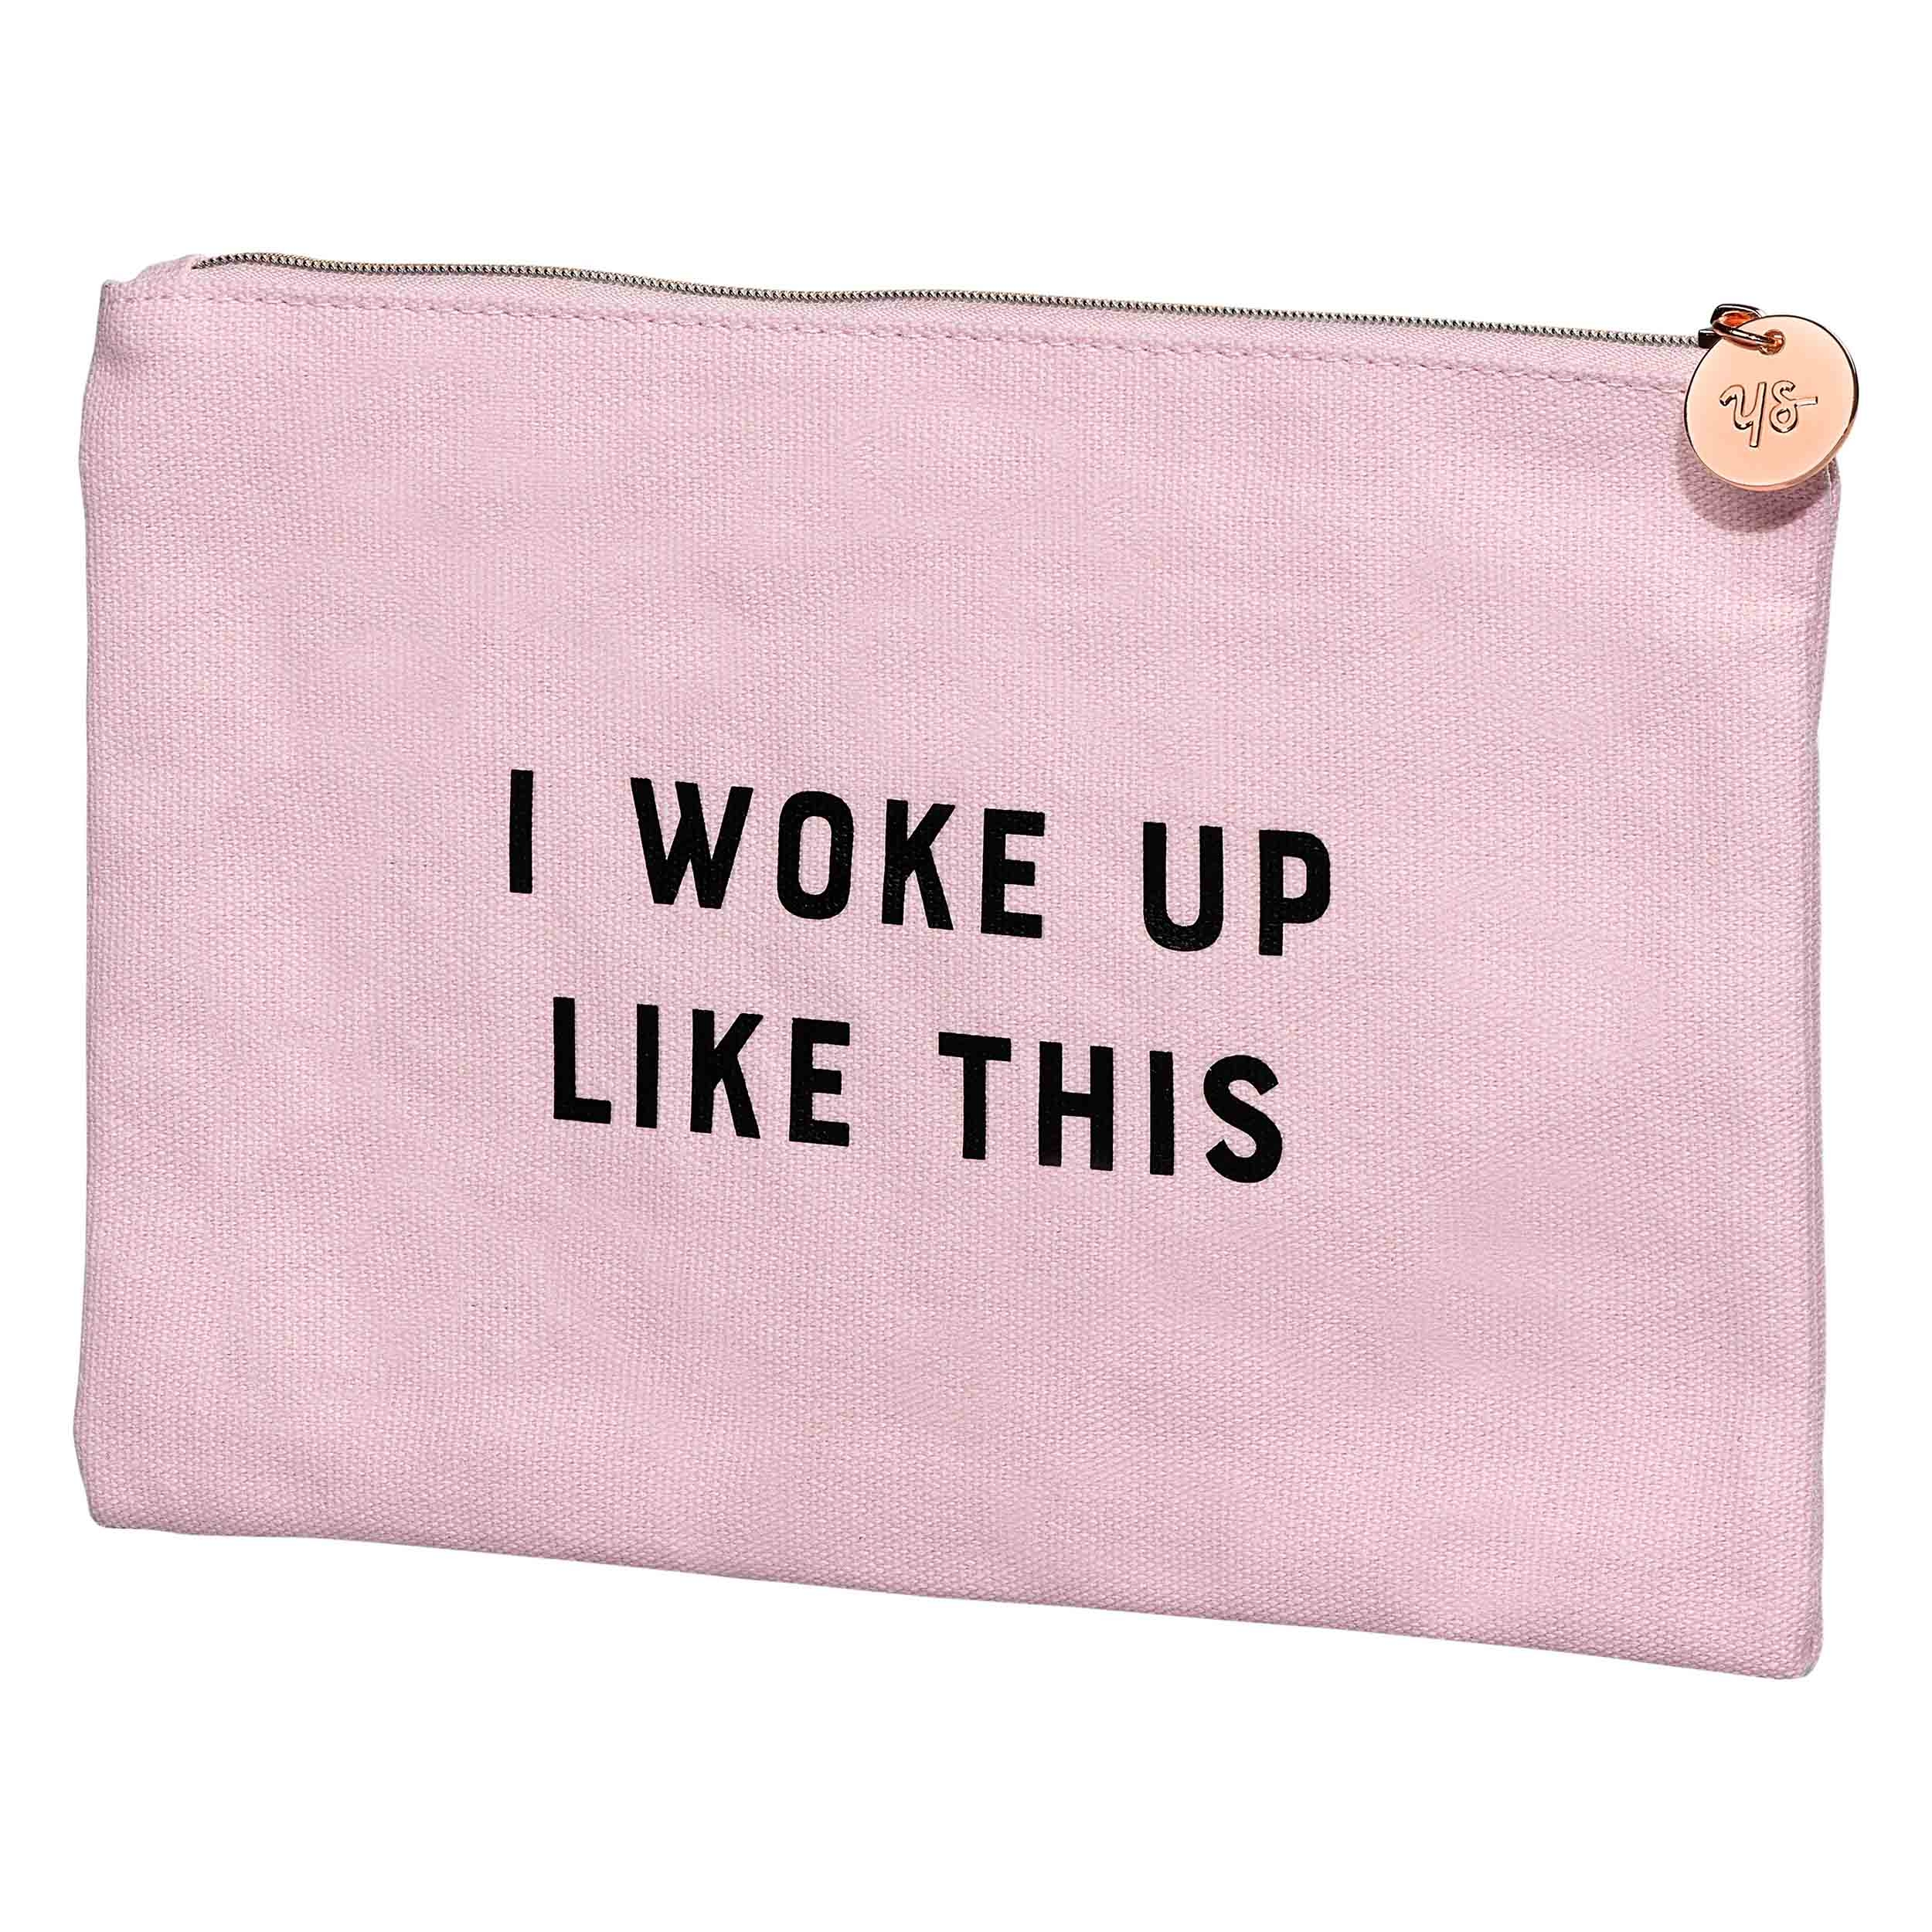 I woke up like this - Makeup Bag